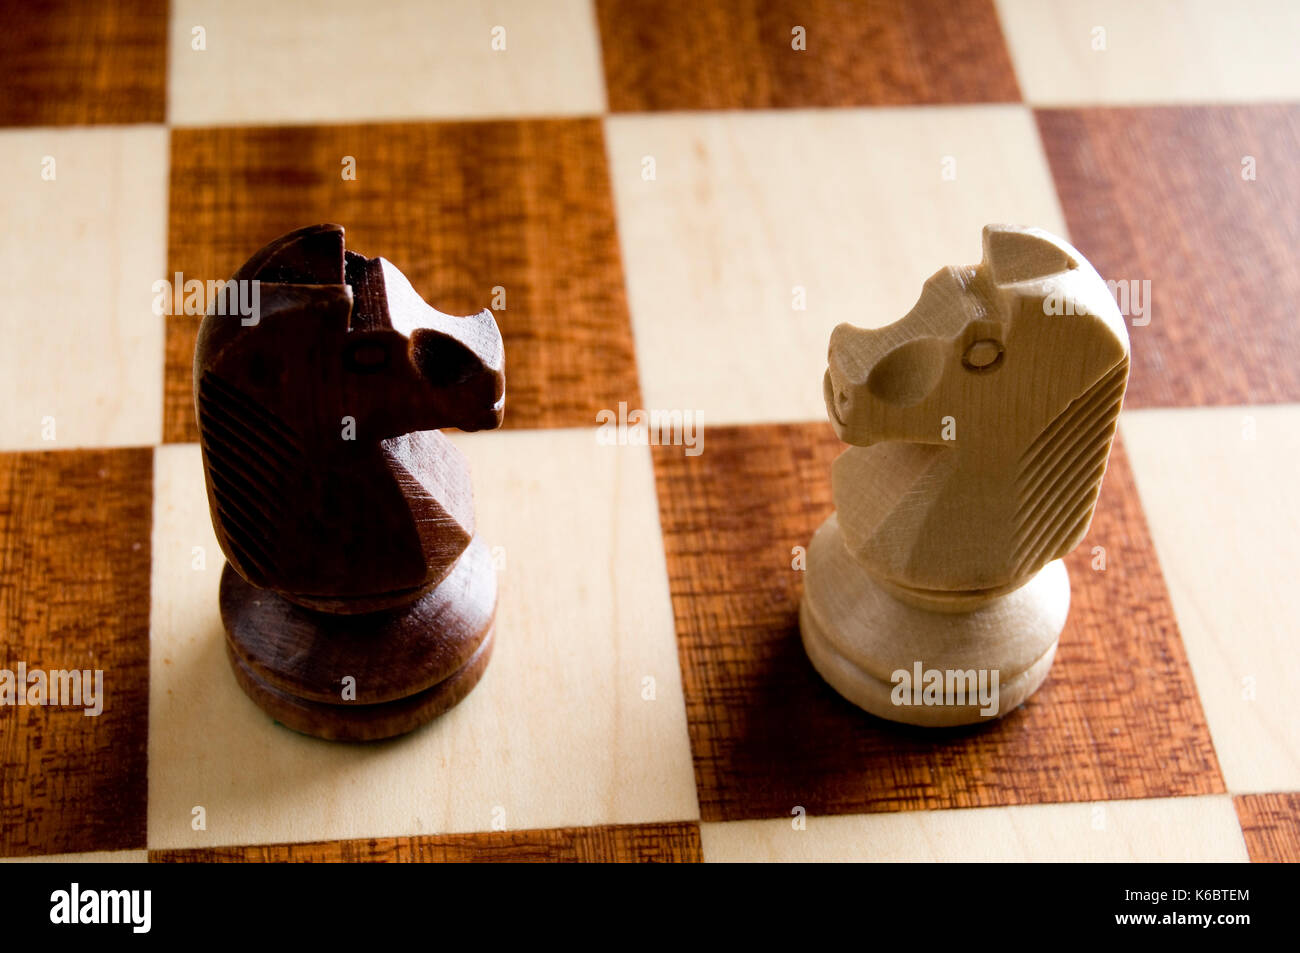 chess knights facing each other - Stock Image